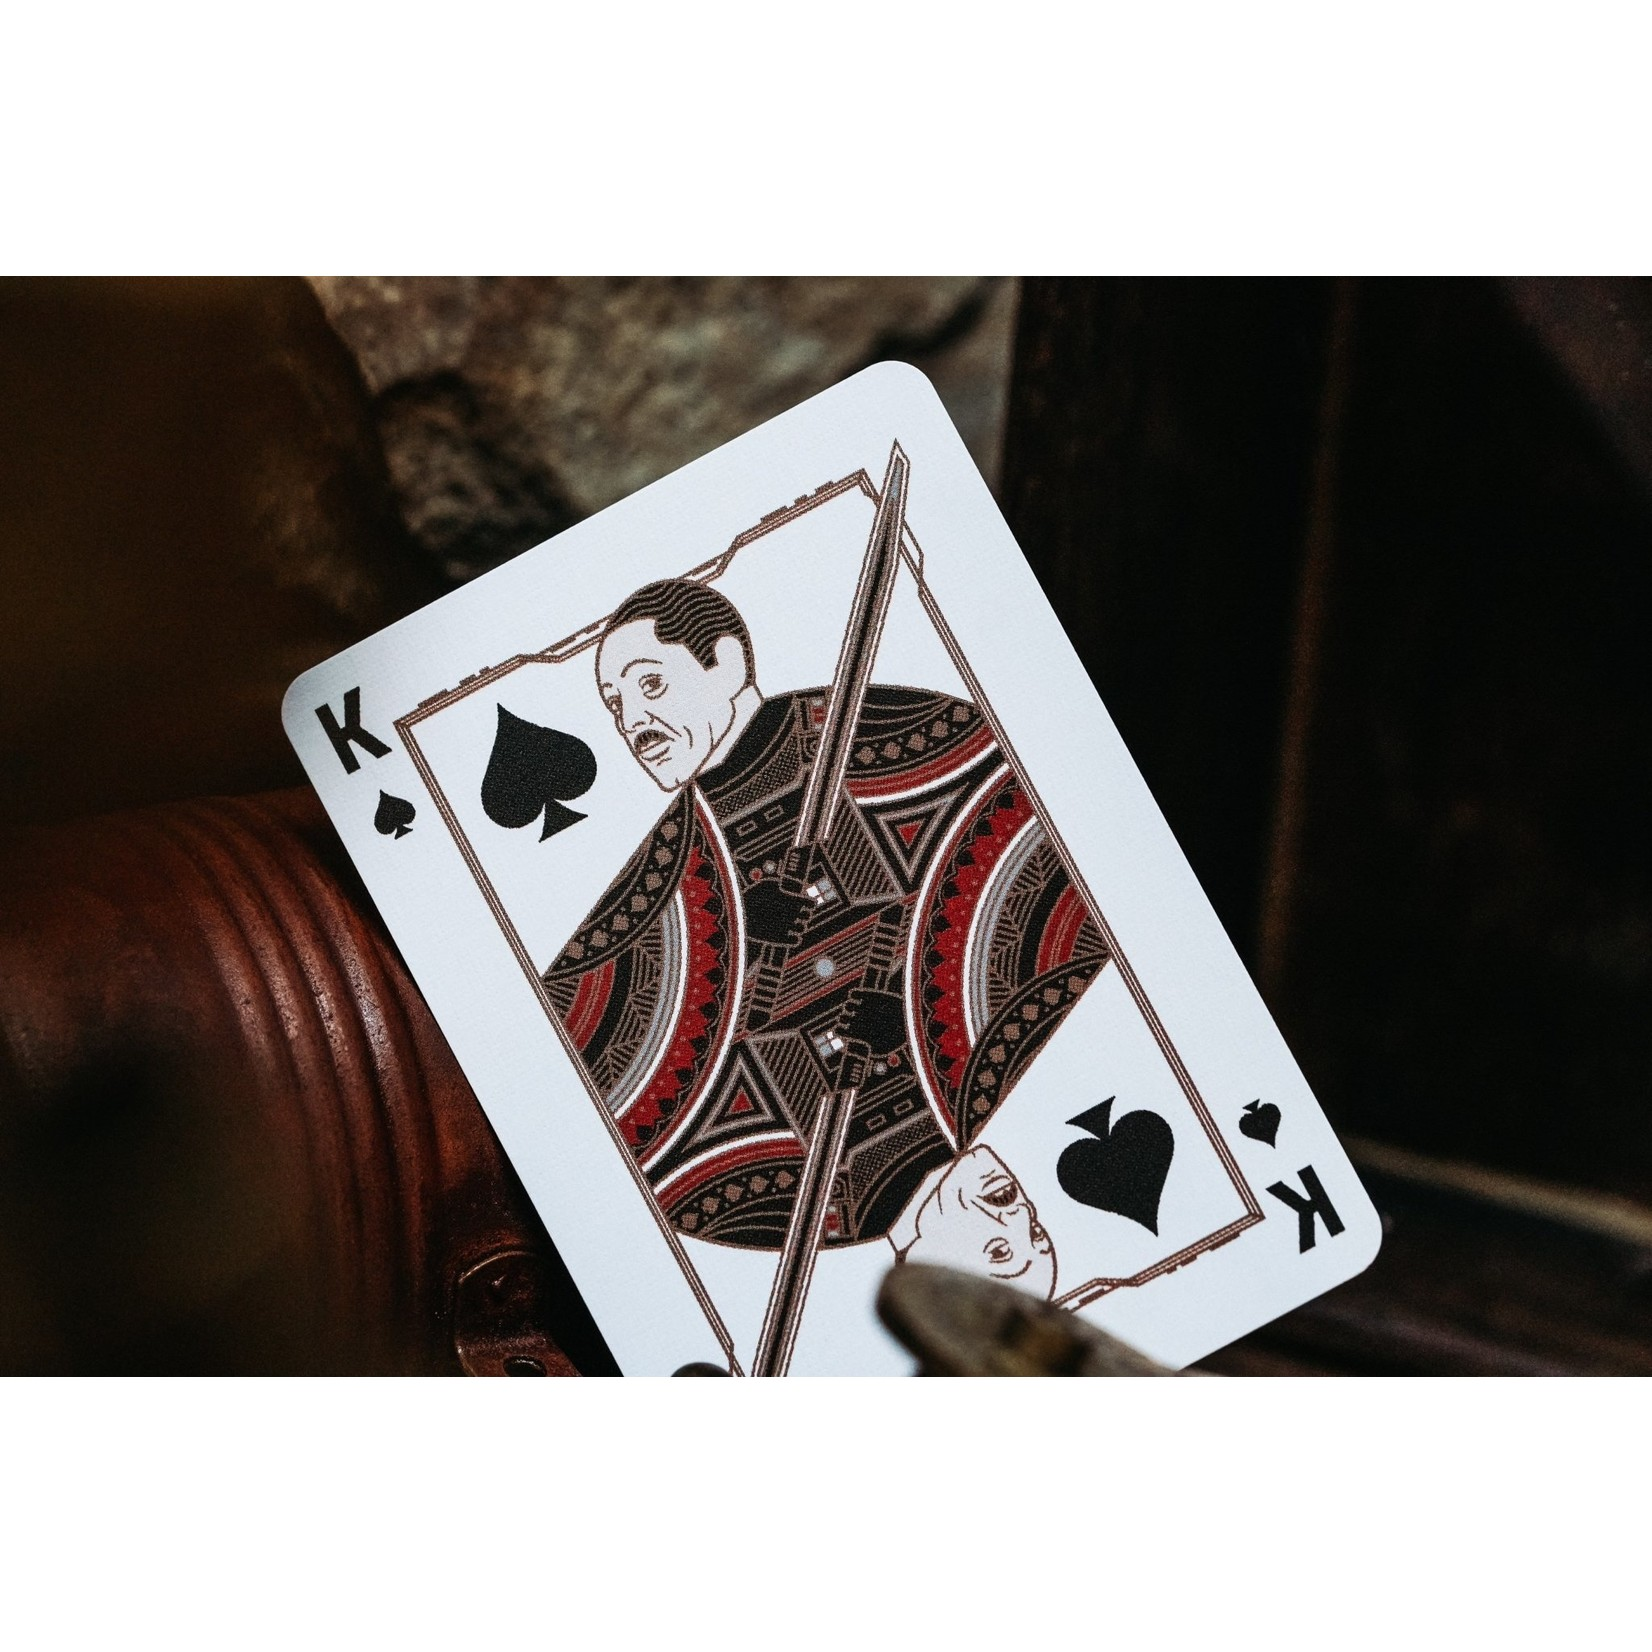 theory11 Mandalorian Playing Cards by Theory11